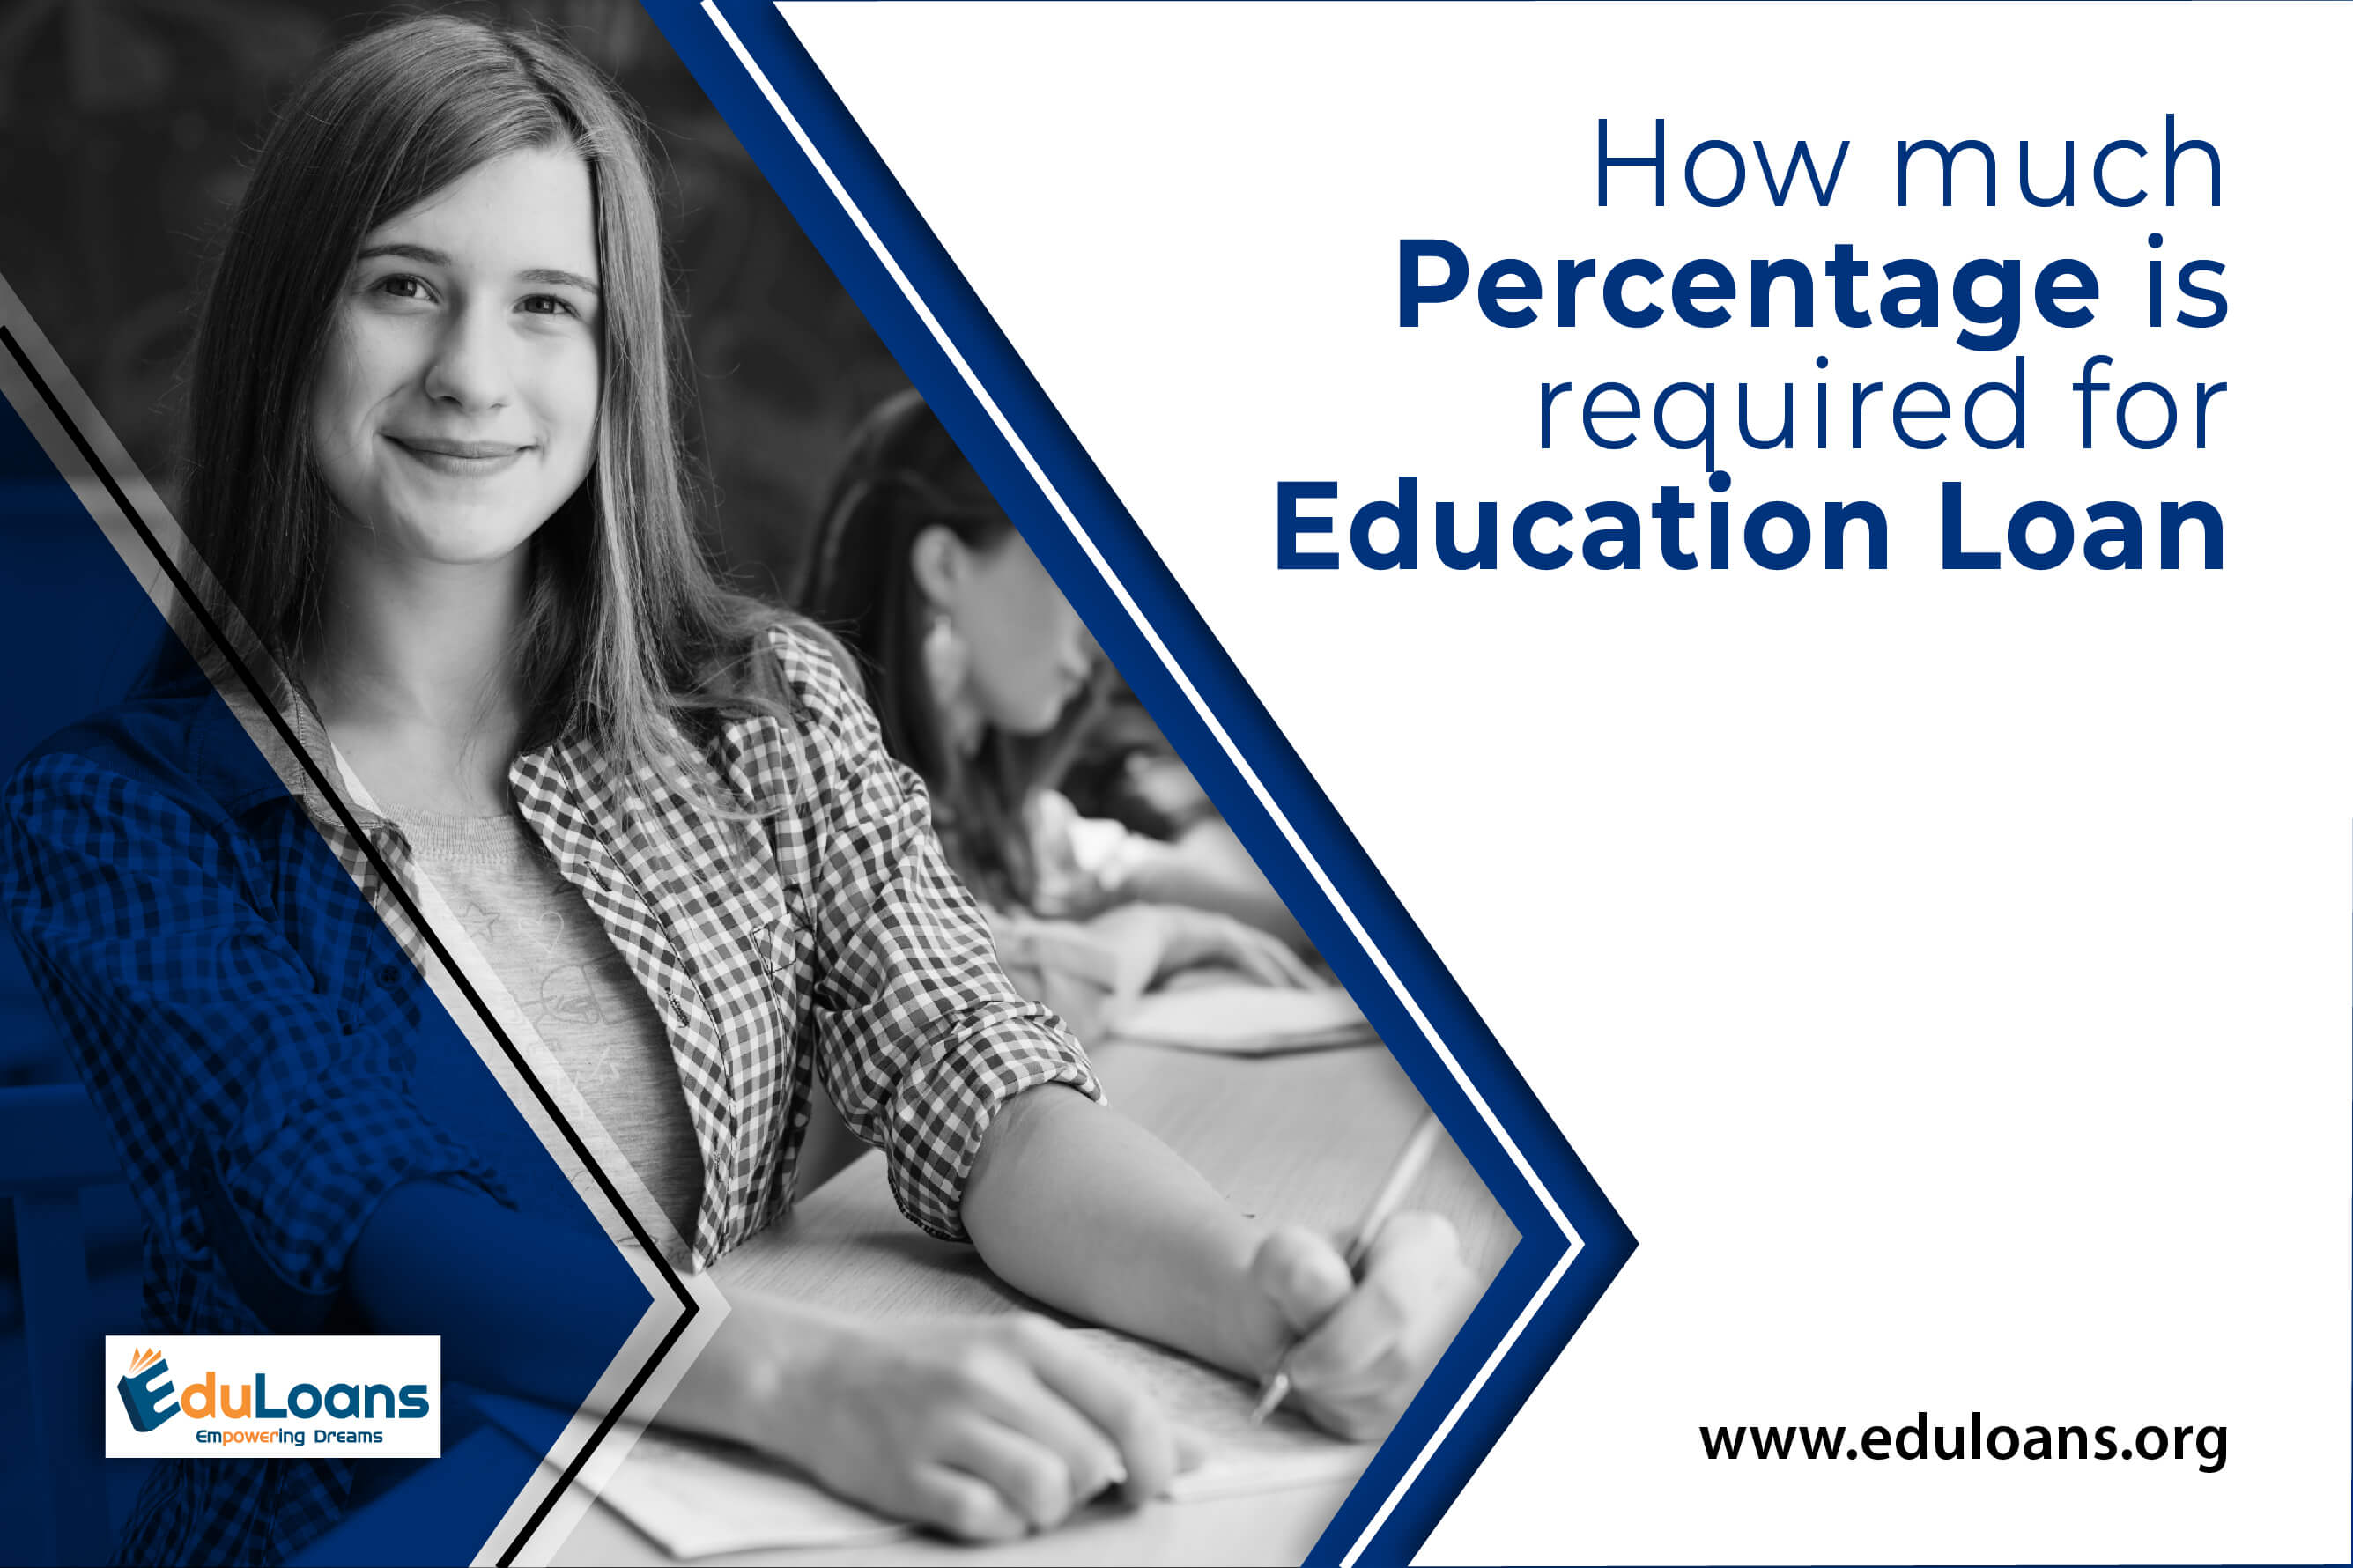 How much percentage is required for education loan?